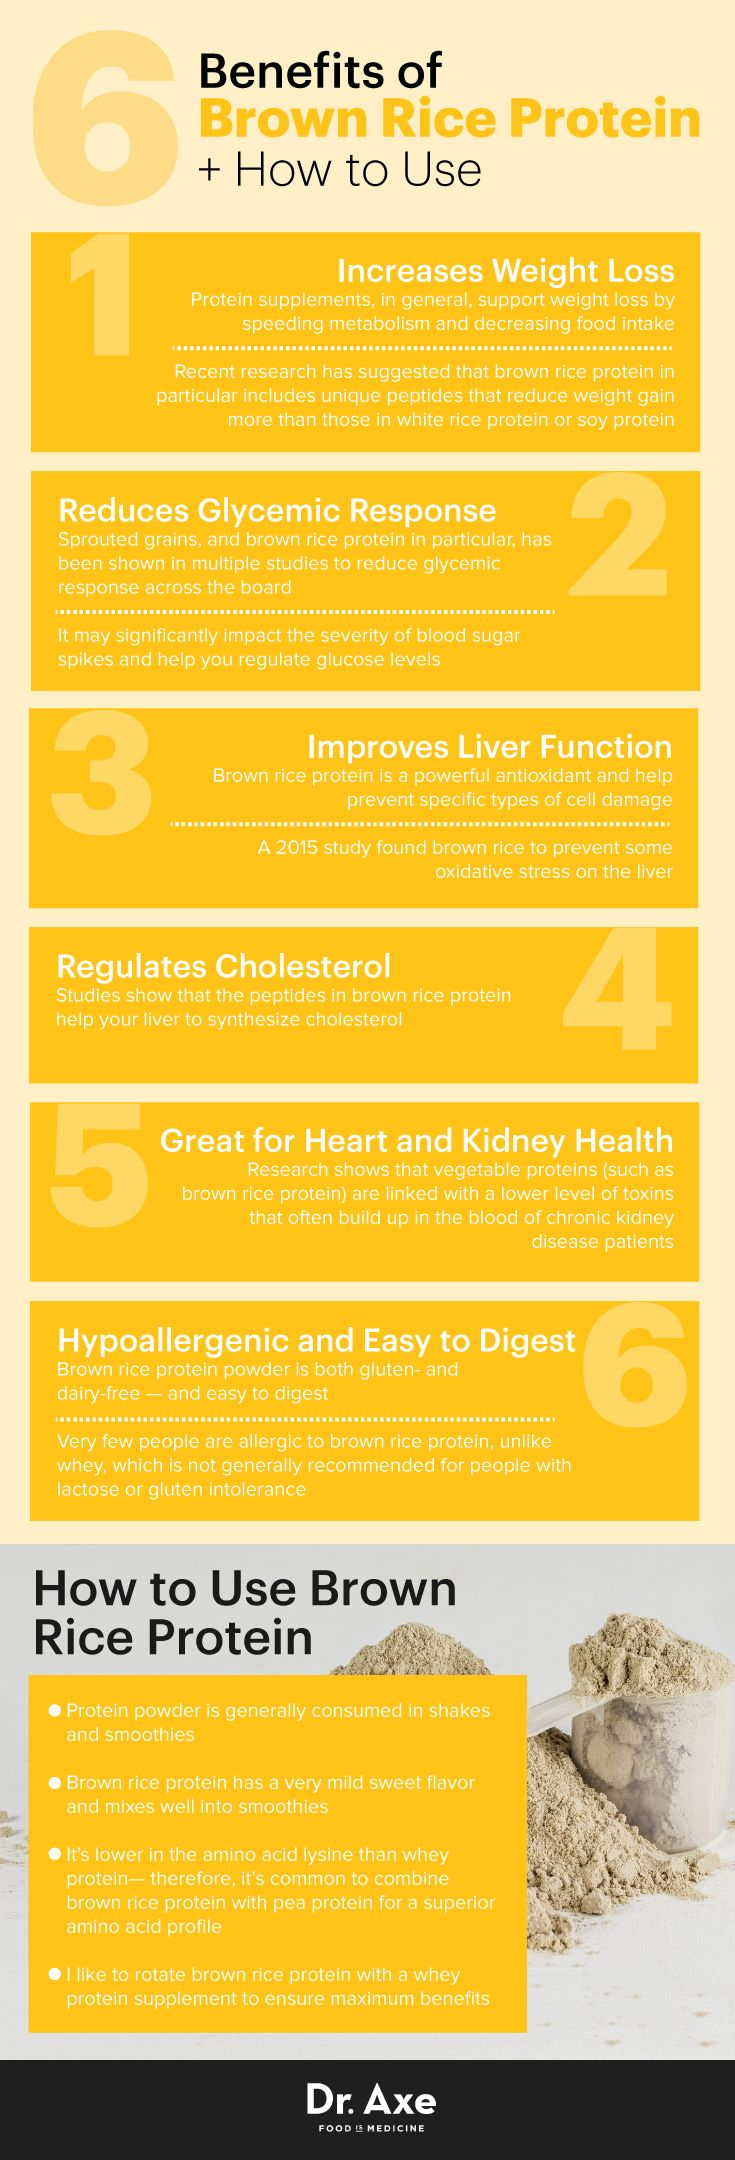 Brown rice protein benefits - Dr. Axe http://www.draxe.com #health #holistic #natural